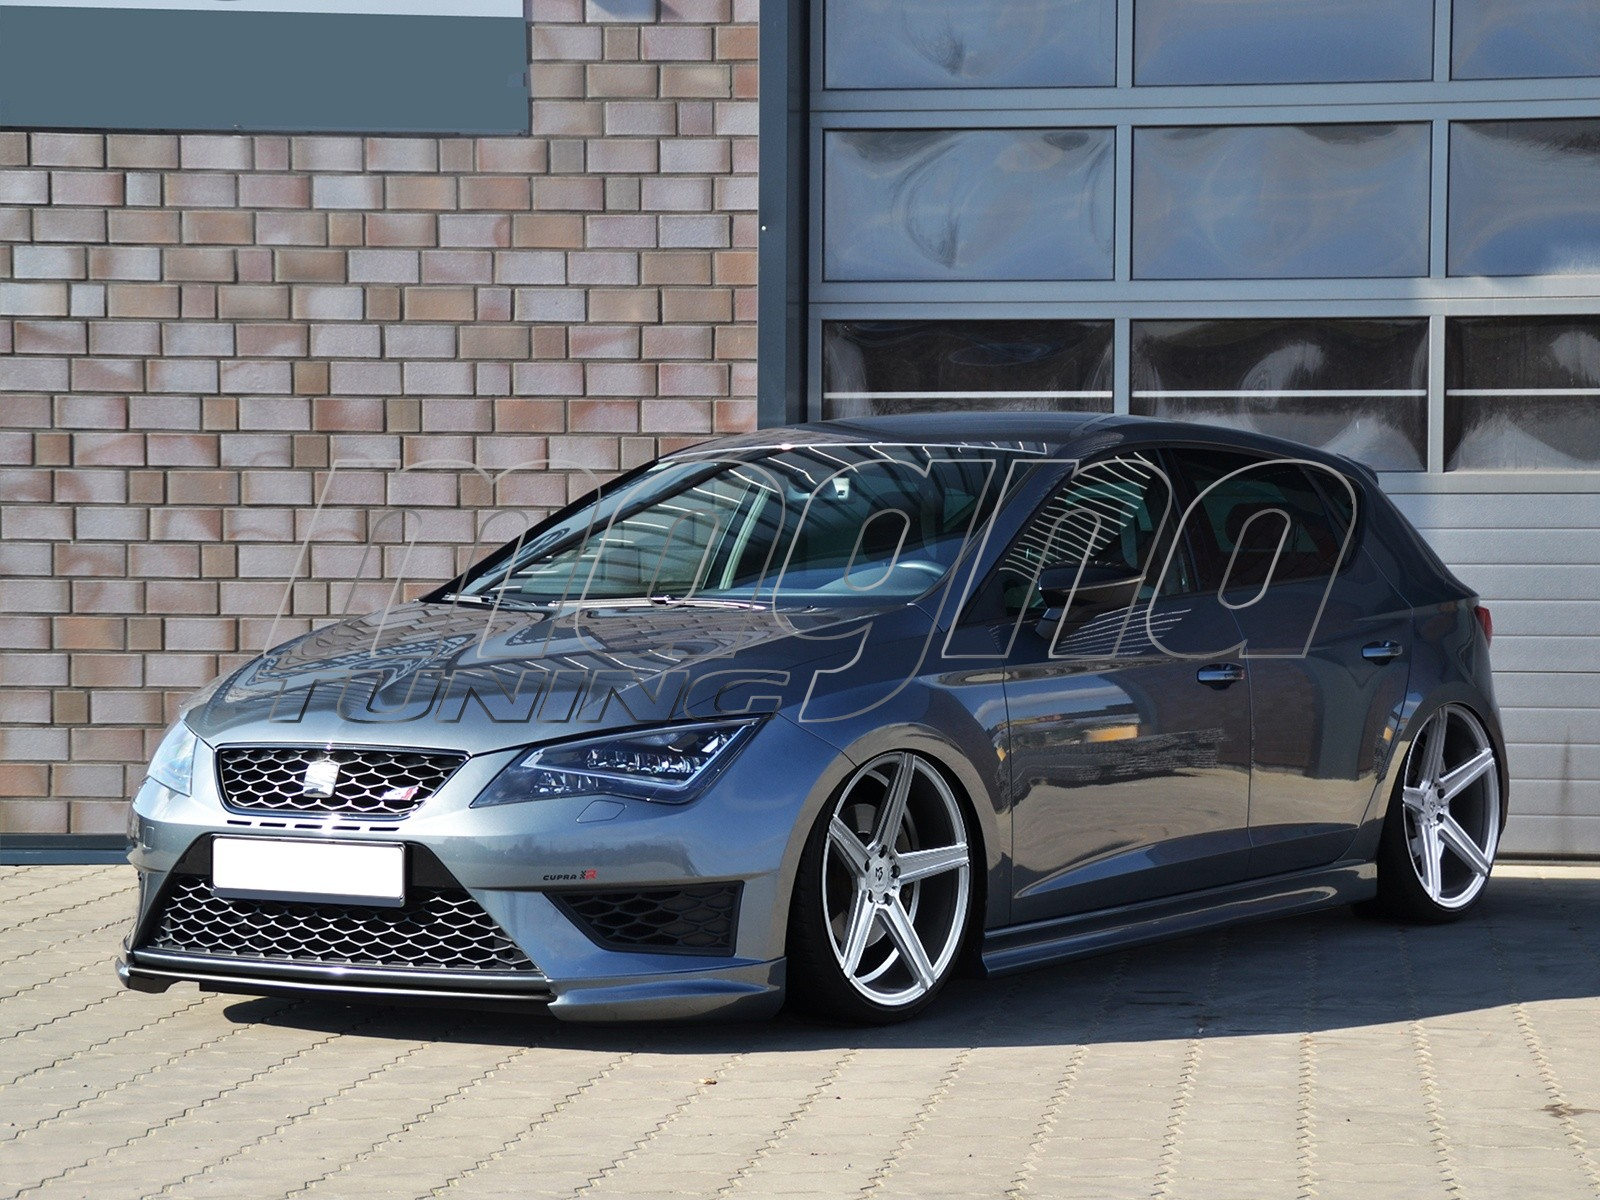 seat leon 5f cupra intenso body kit. Black Bedroom Furniture Sets. Home Design Ideas